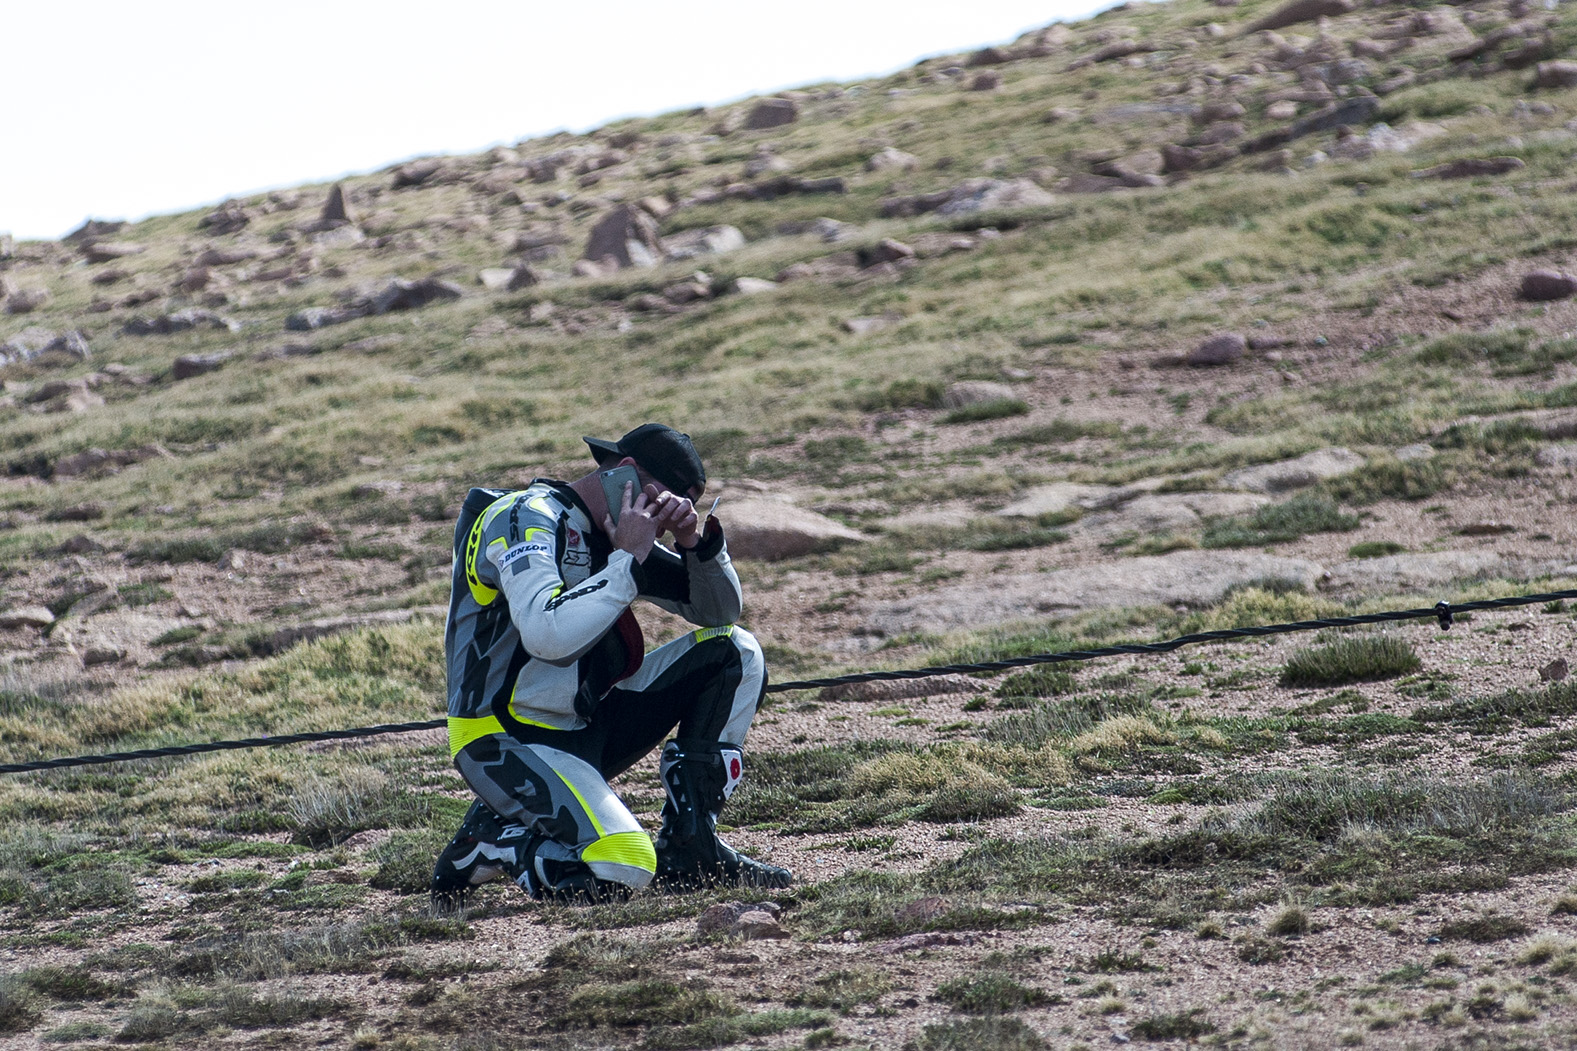 Motorcycle rider David Mobley kneels down to cry while talking on the phone to his father at Devils Playground near the summit of Pikes Peak on Thursday, June 25, 2015, in Colorado Springs, Colorado. Mobley learned only moments earlier that his good friend and fellow rider Carl Sorensen of Centennial, Colorado, slipped off the side of the Pikes Peak highway and died during his last practice run of the day.